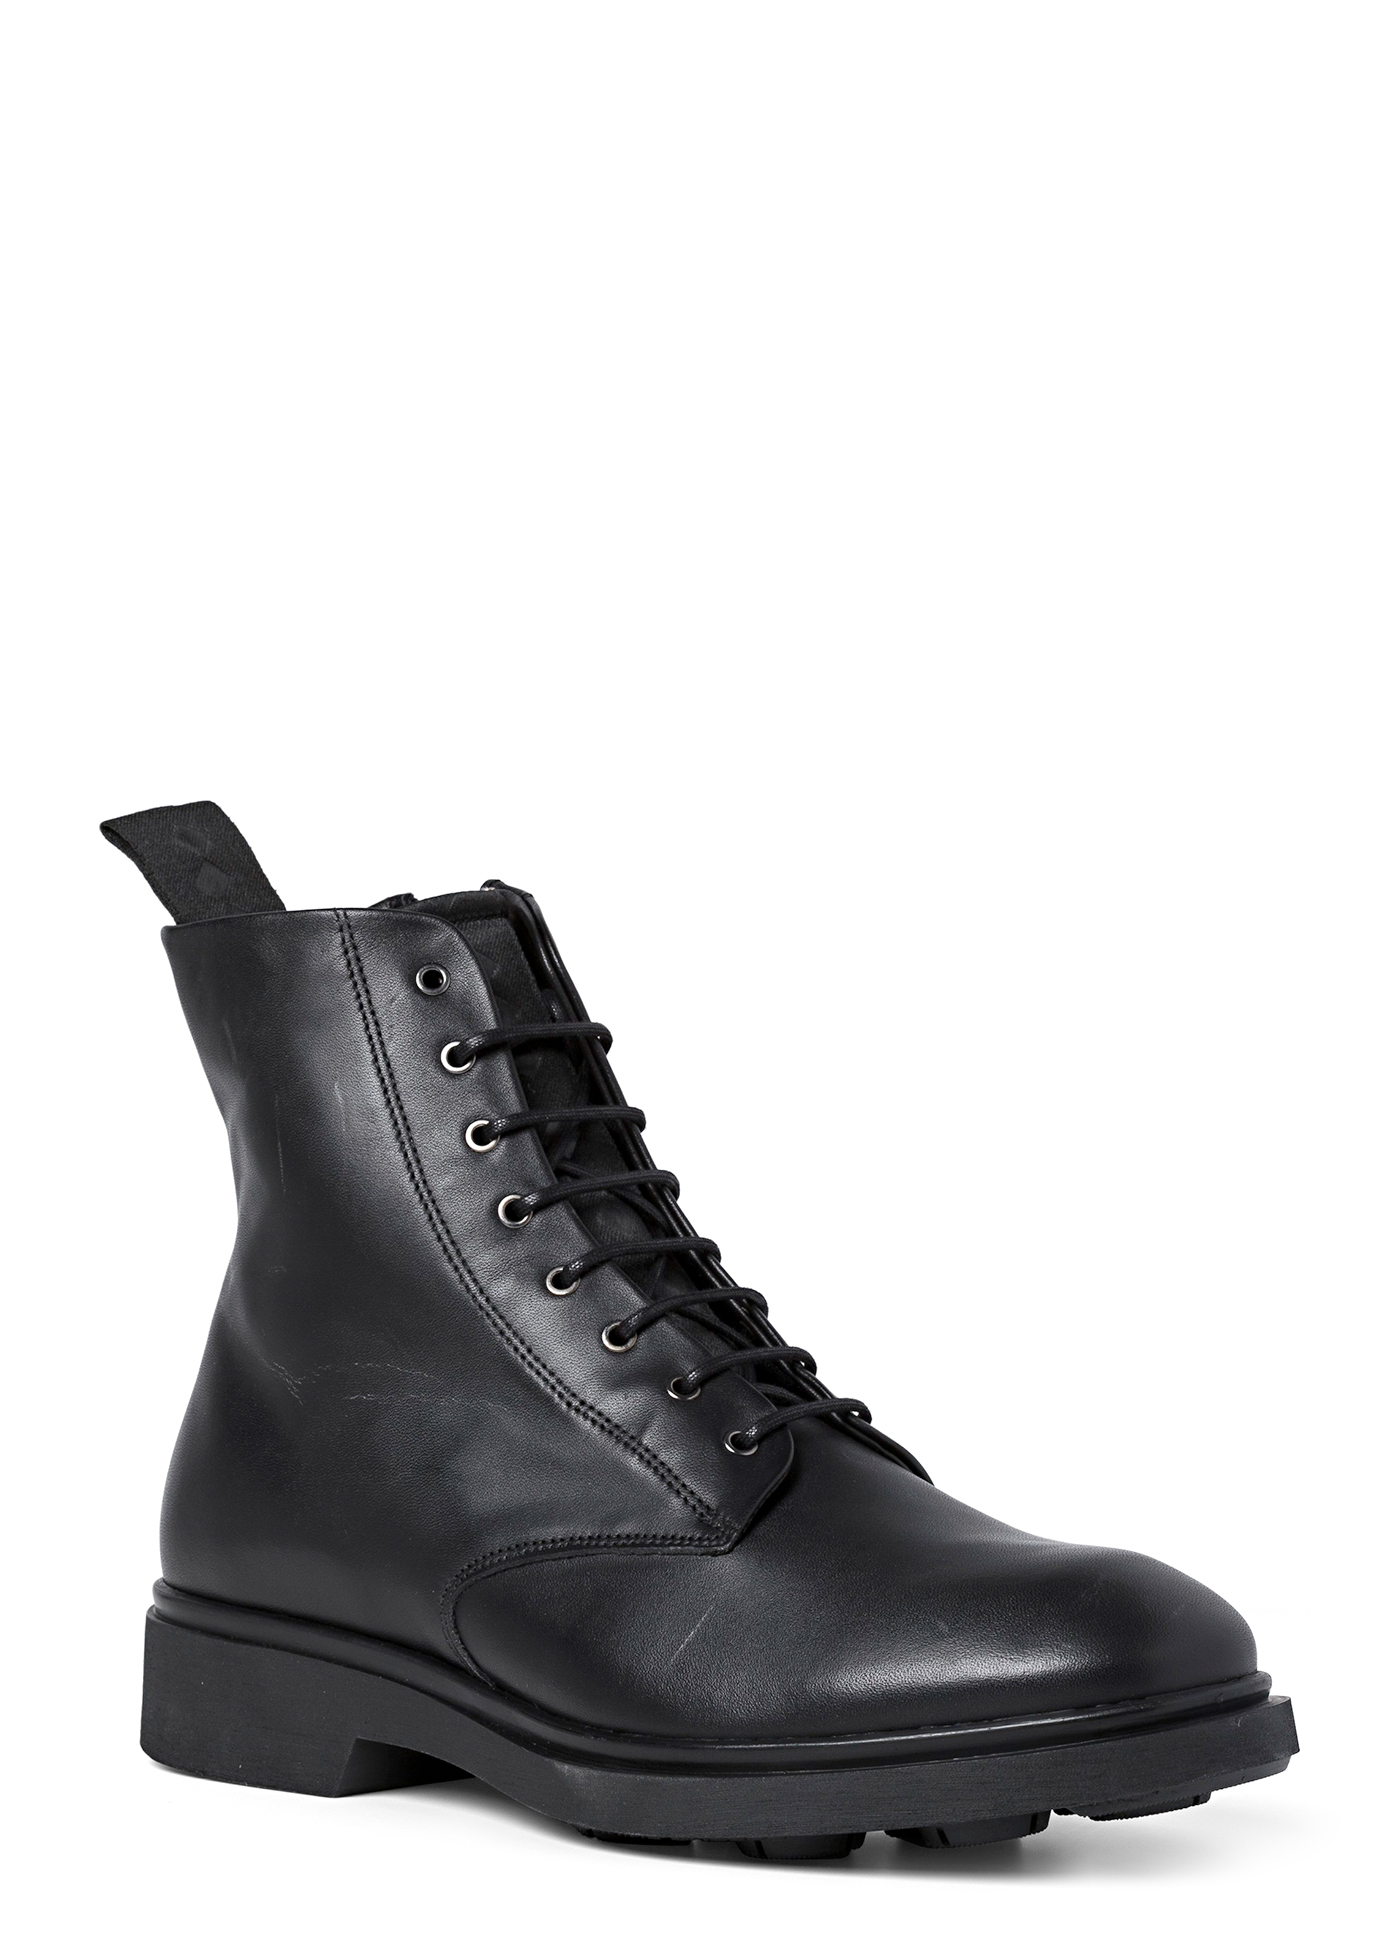 Defender Lace Up Boot 215 image number 1